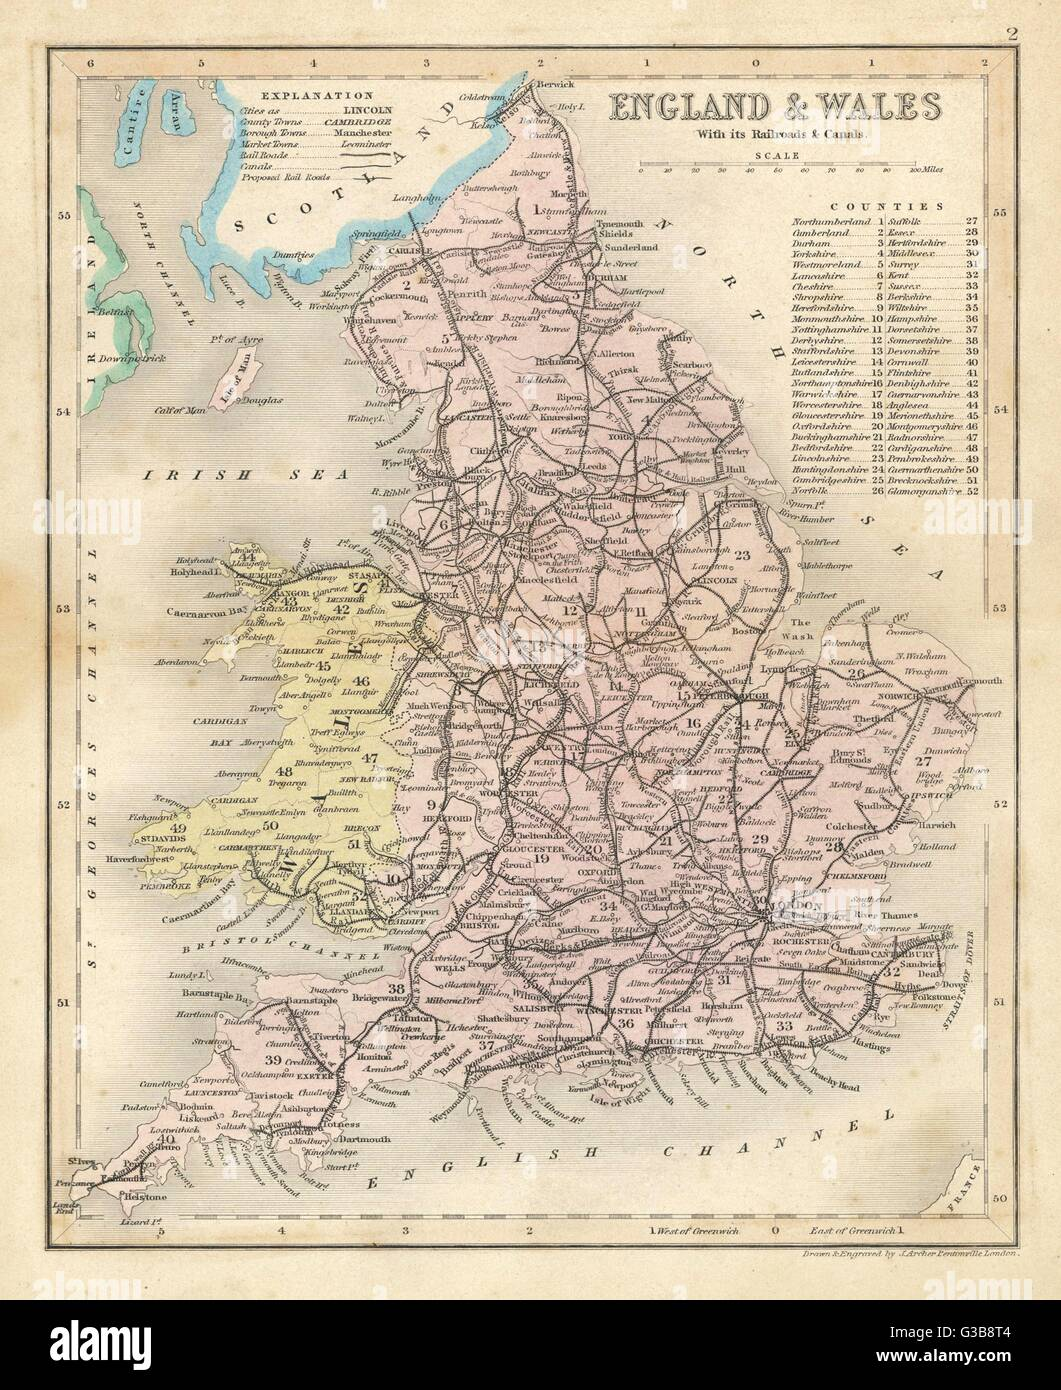 Map of England and Wales showing railways